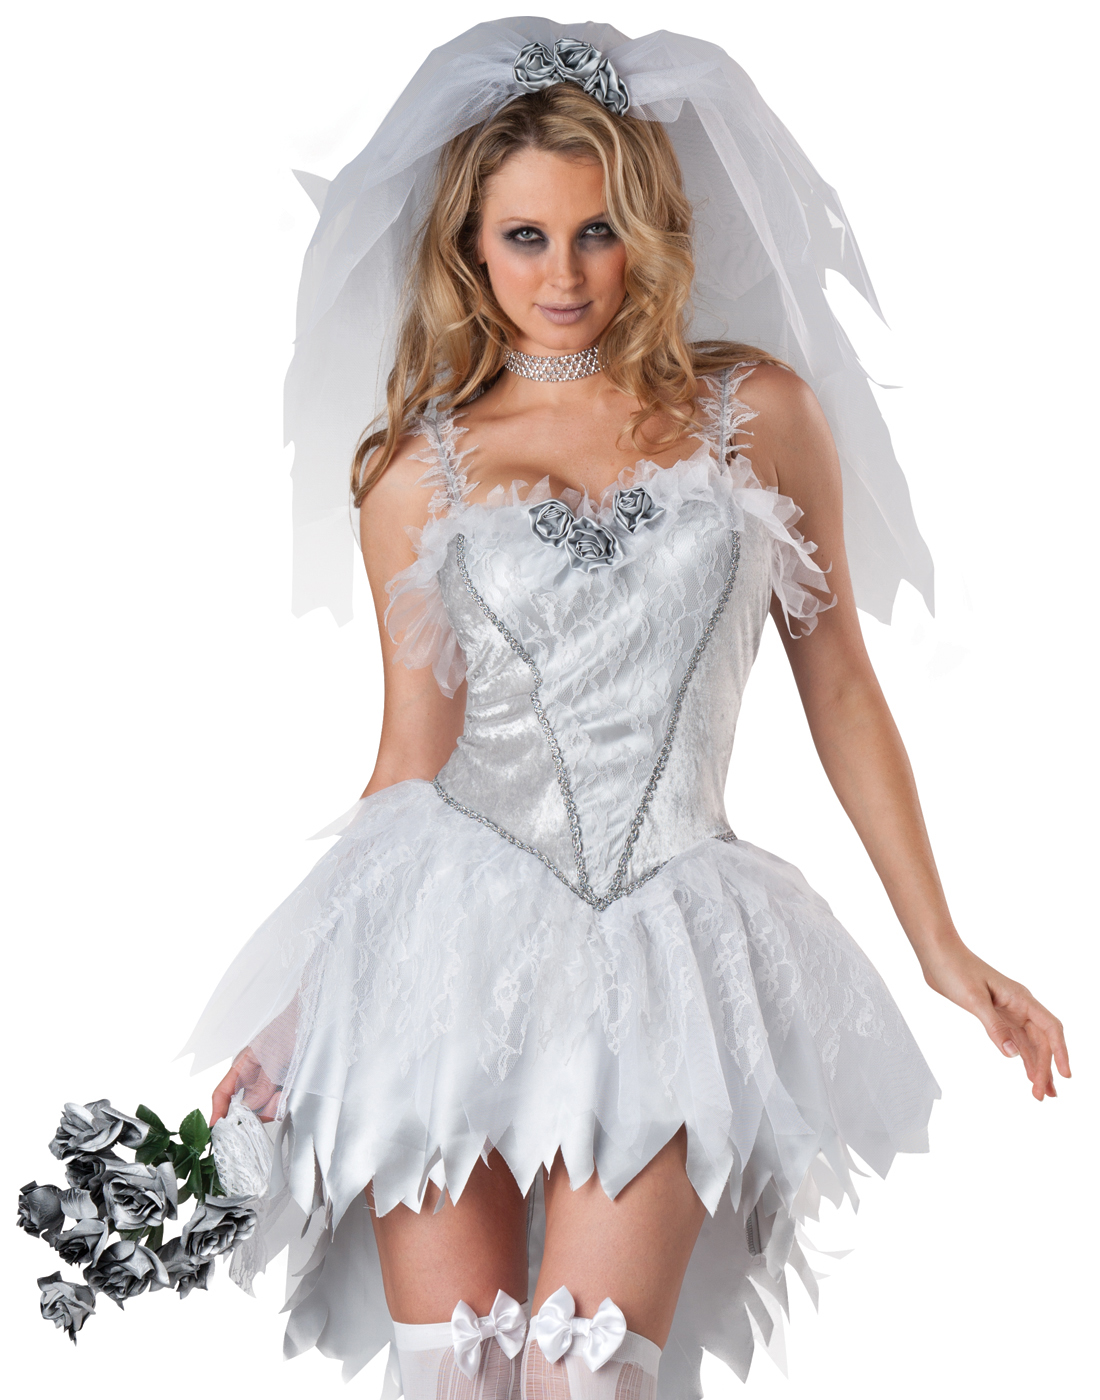 Bloodless Bride Zombie Wedding Dress Gown Dead Girl Adult